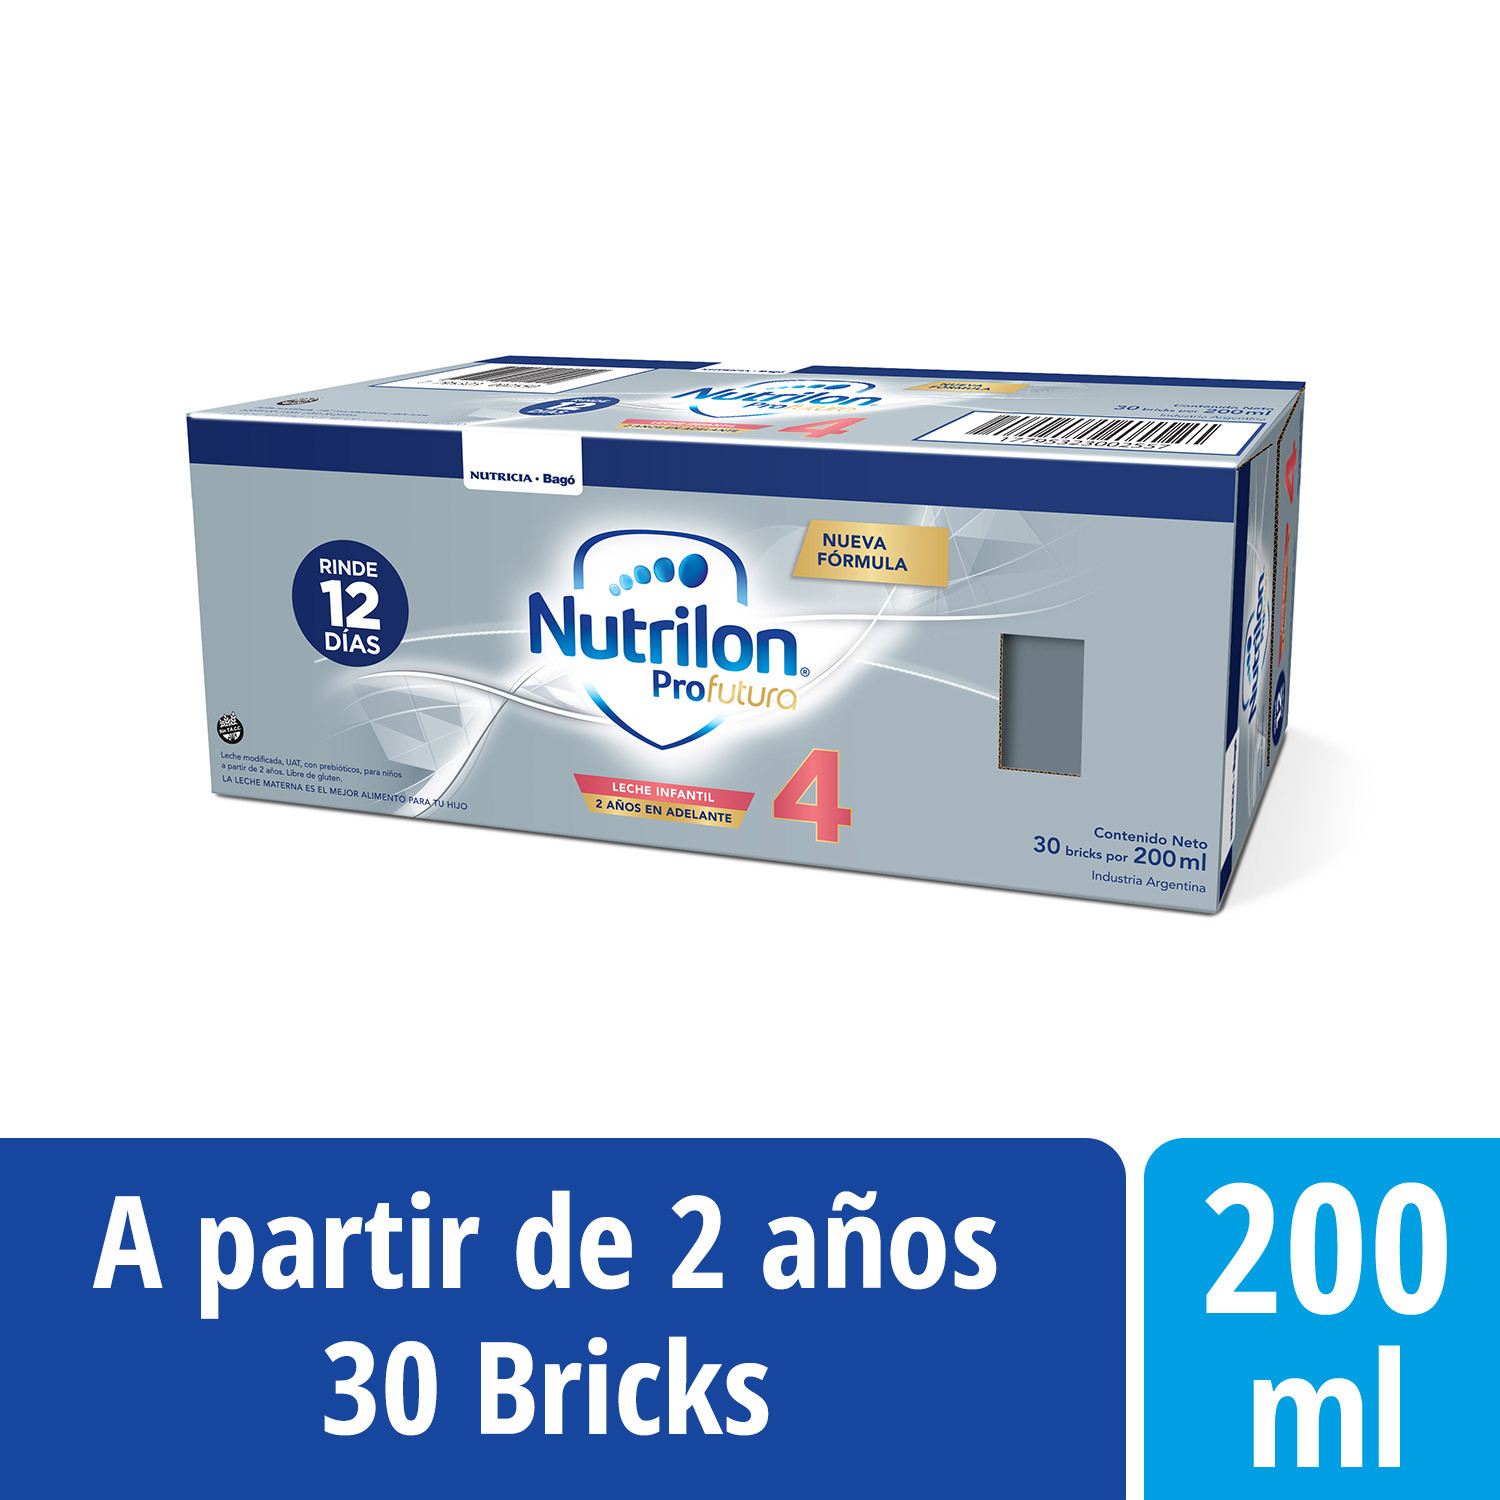 Nutrilon Profutura 4 - Brick 200 ml